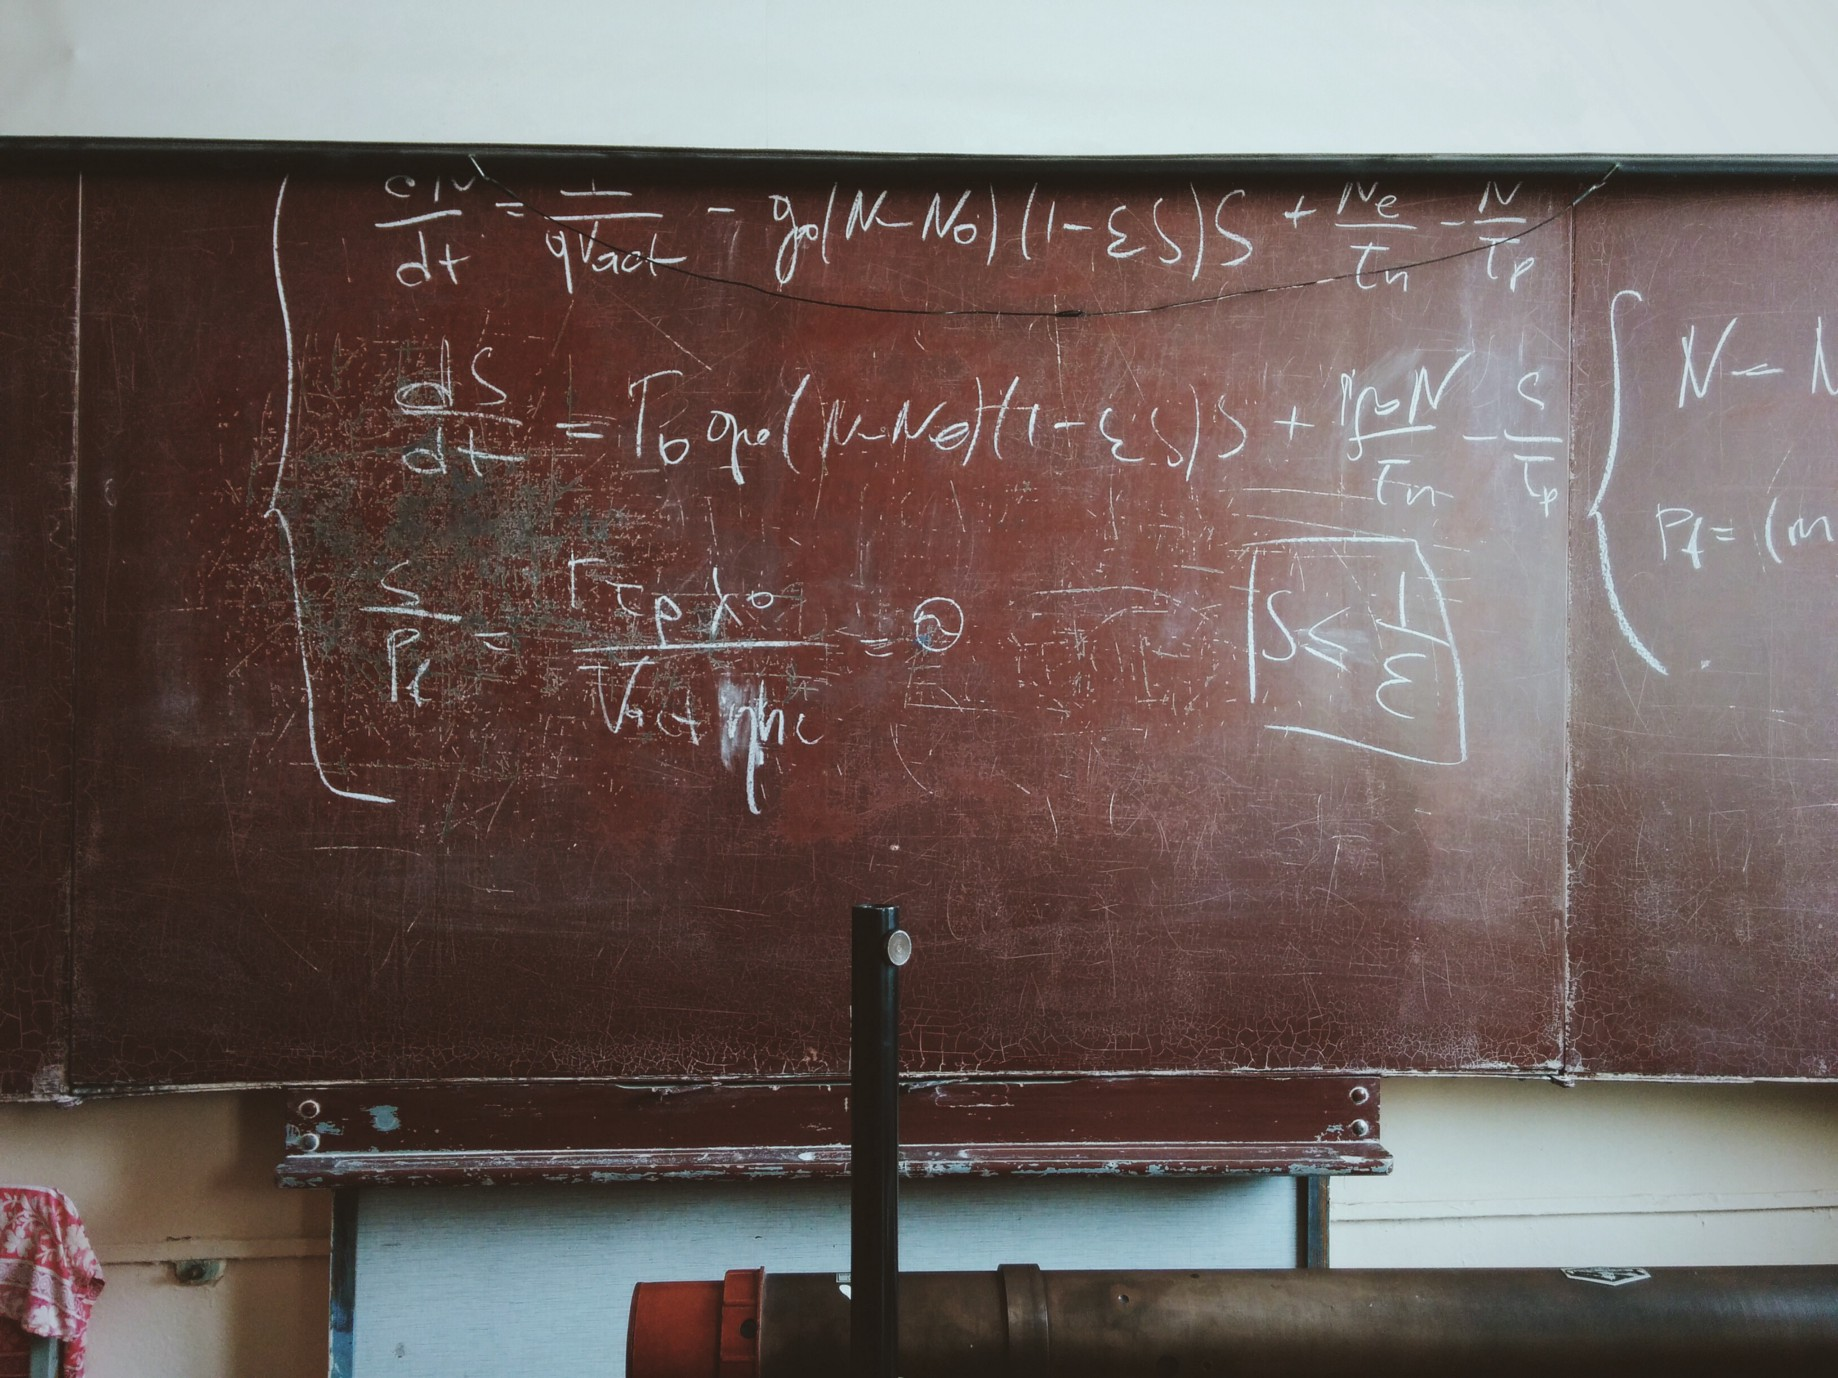 A beginner's guide to deriving and implementing backpropagation